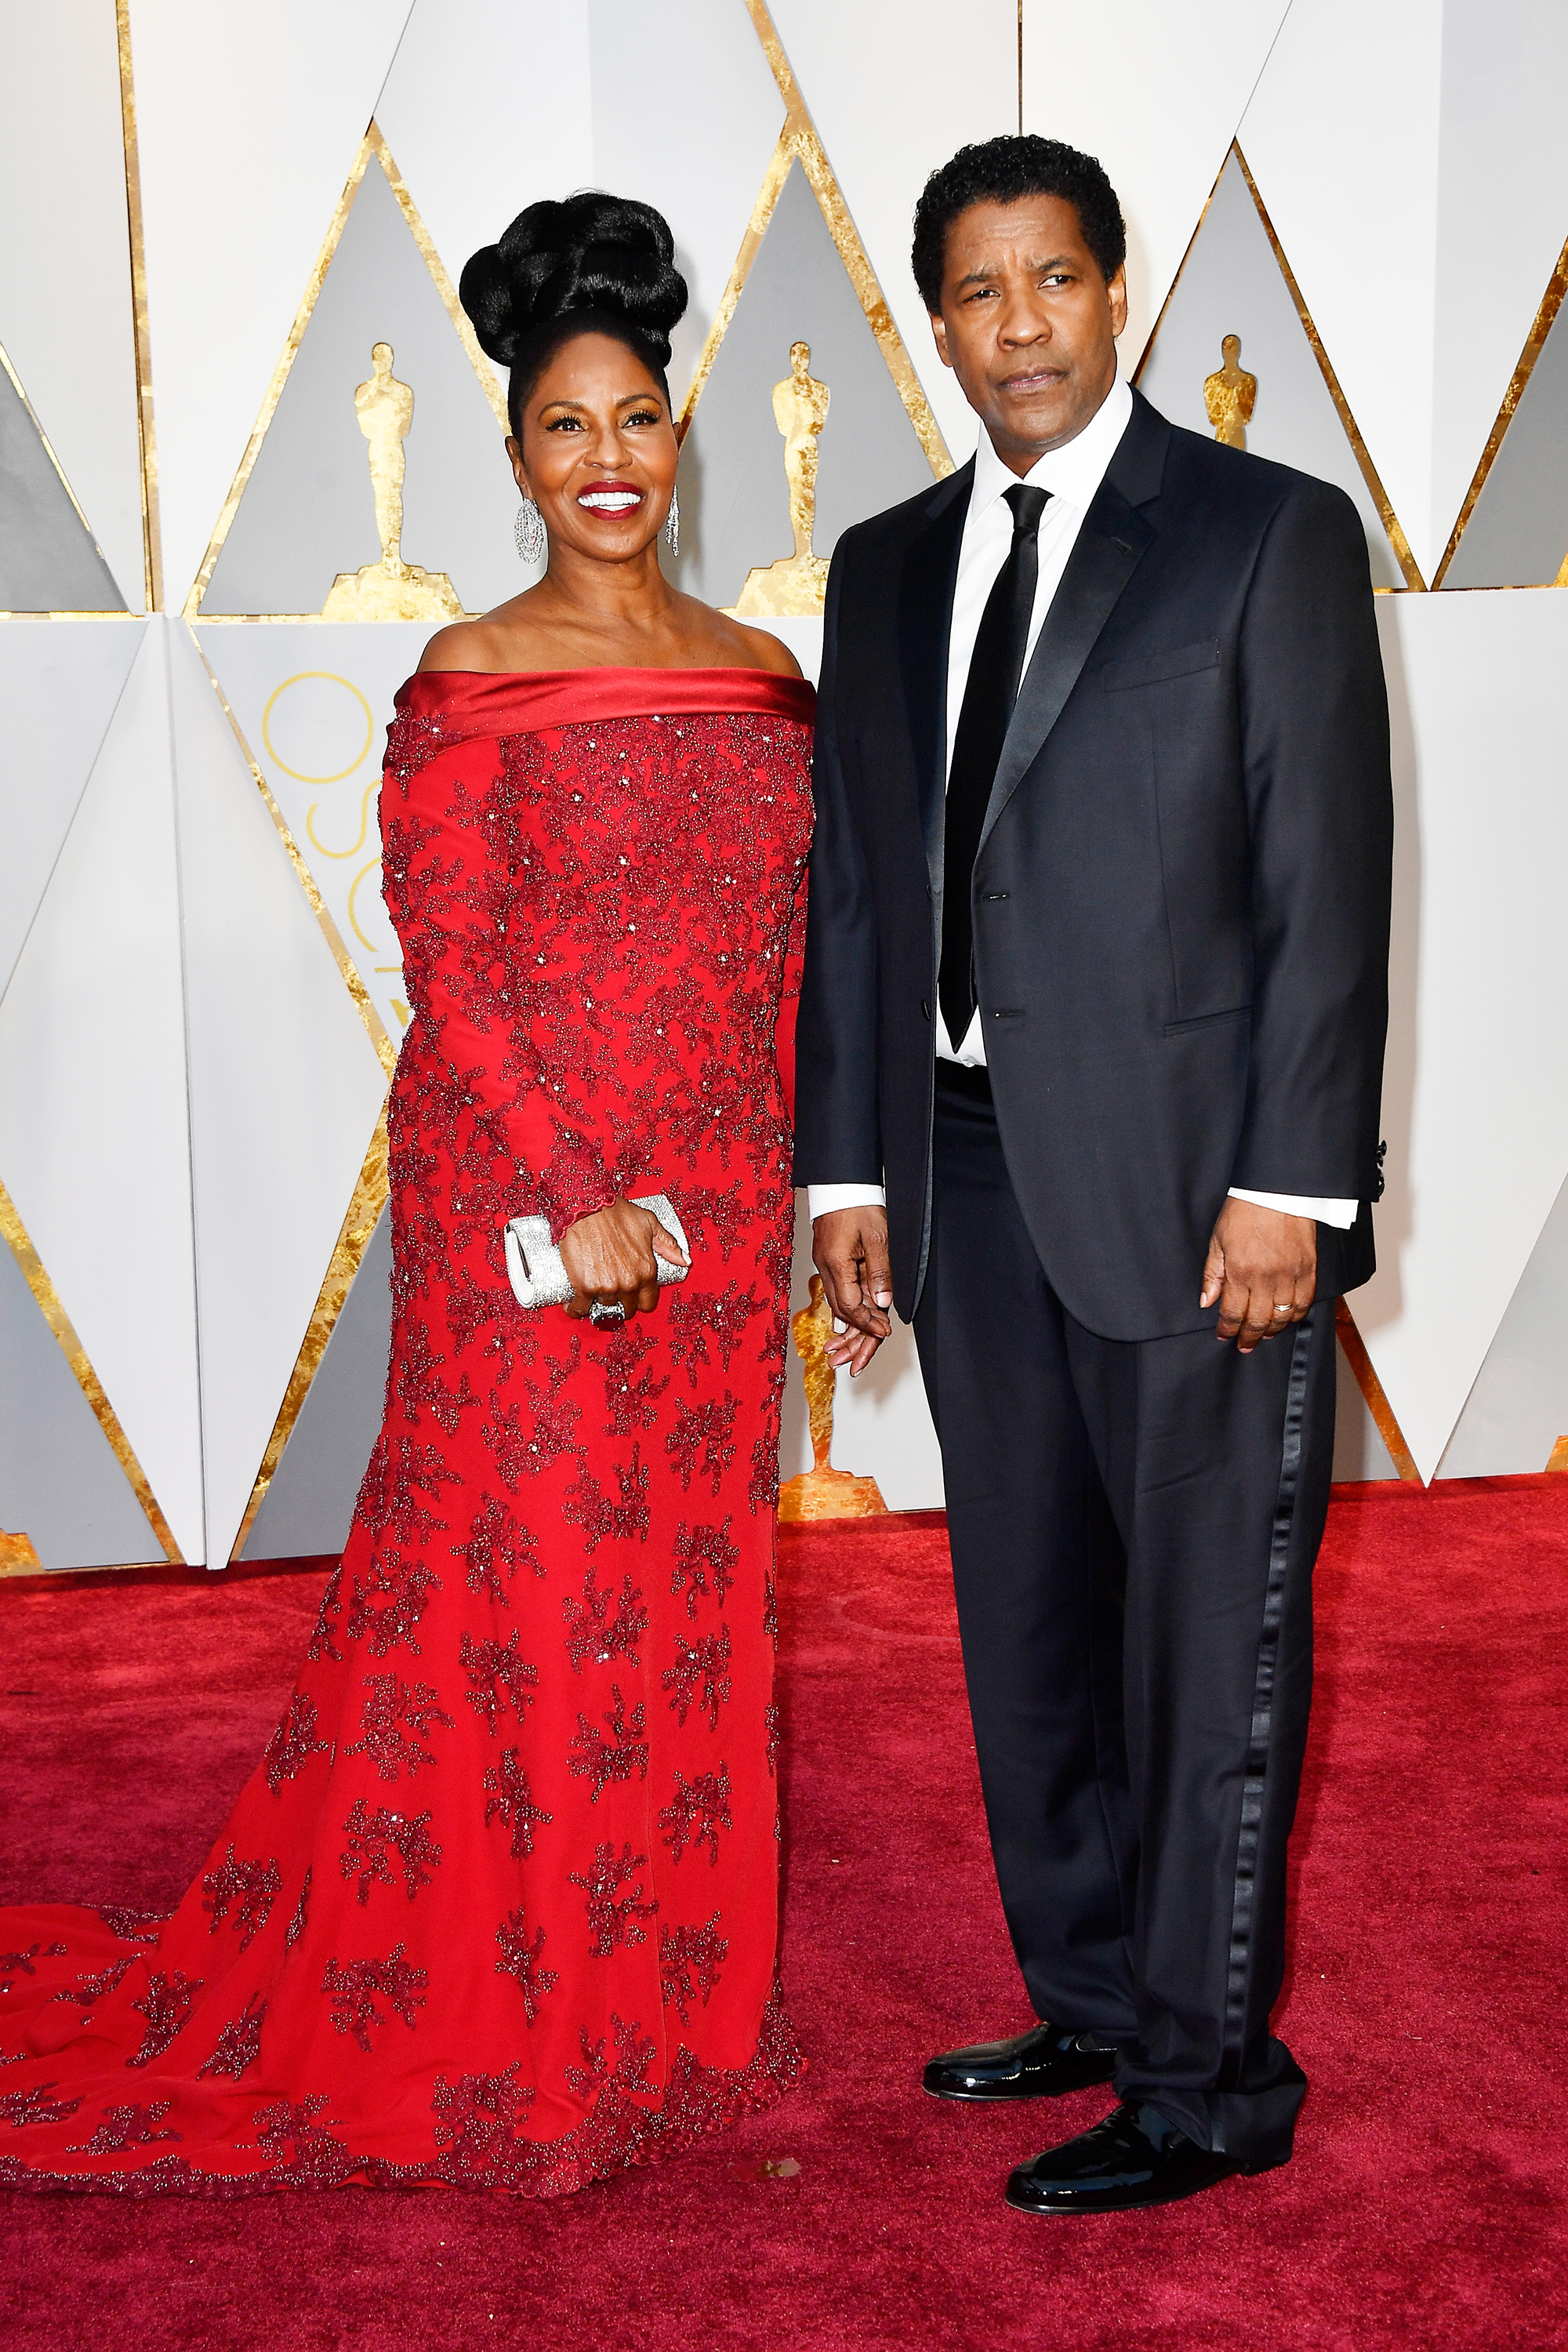 Pauletta Washington and Denzel Washington on the red carpet for the 89th Oscars, on Feb. 26, 2017 in Hollywood, Calif.